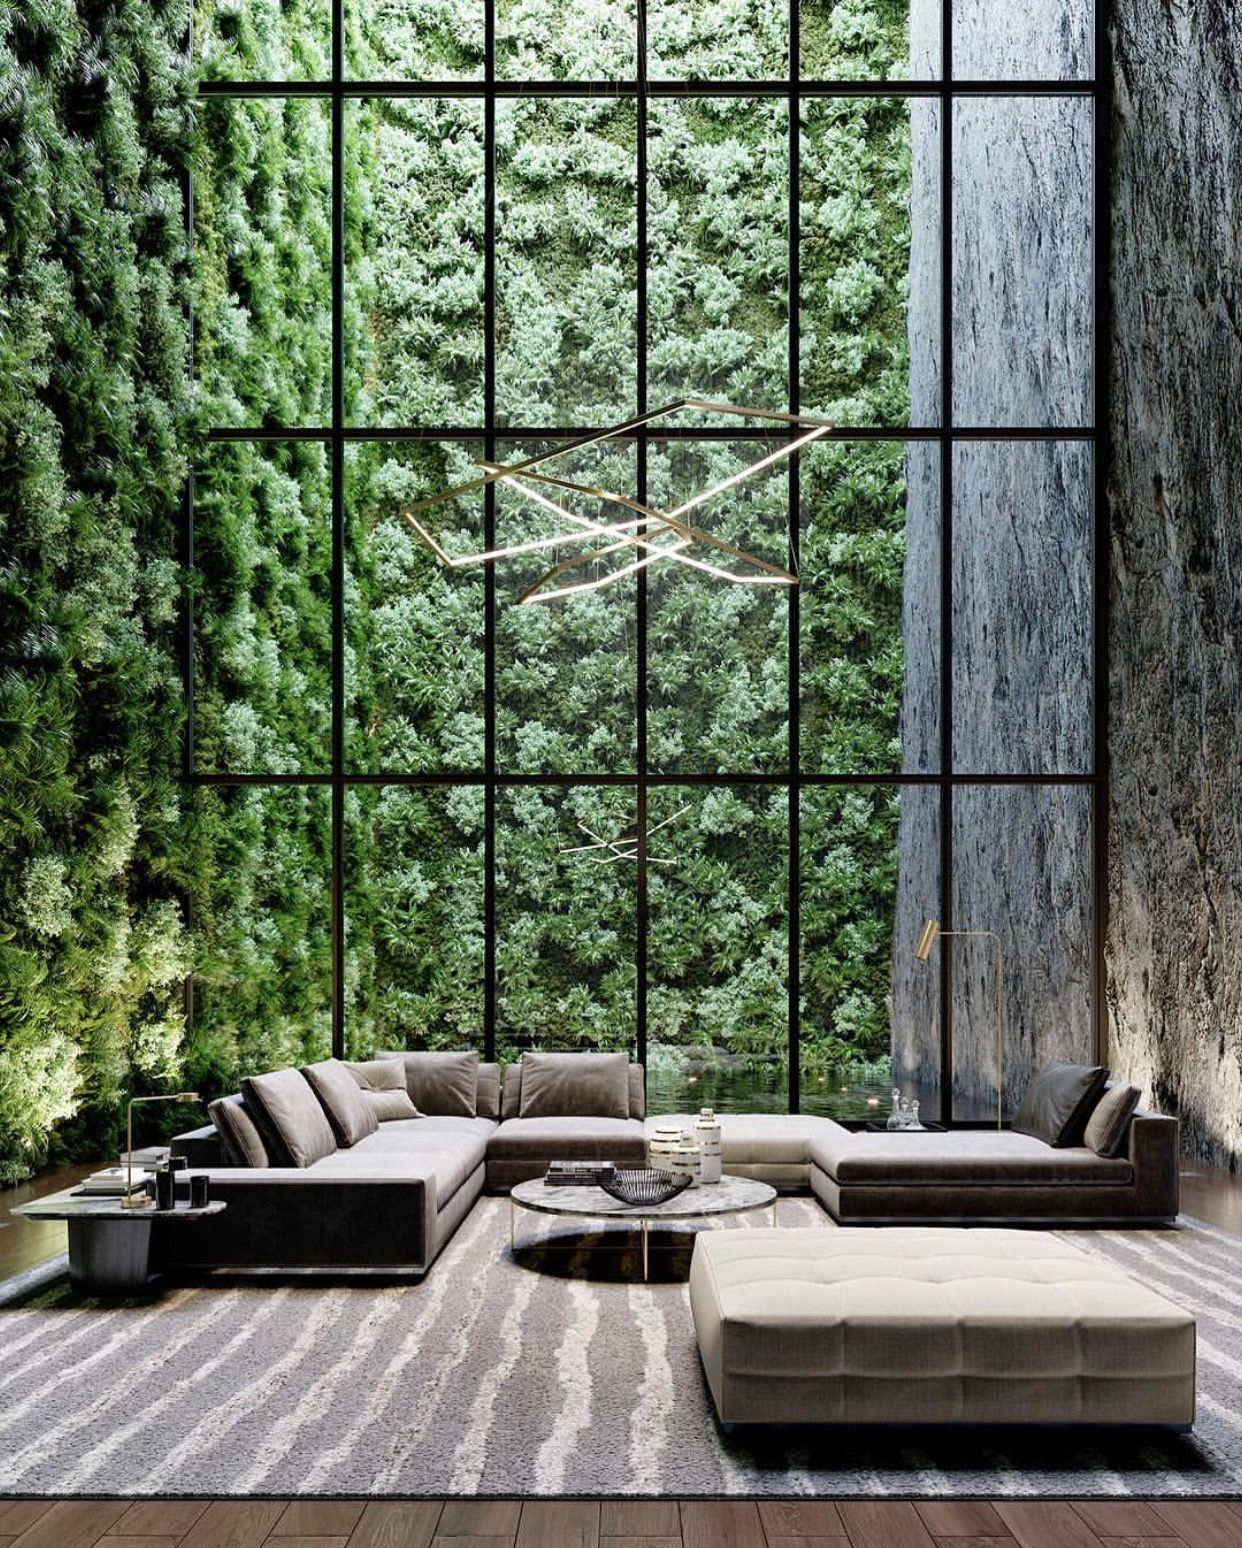 Spatious lounge area greenery all grey furniture minimal interior interior design modern design ideas